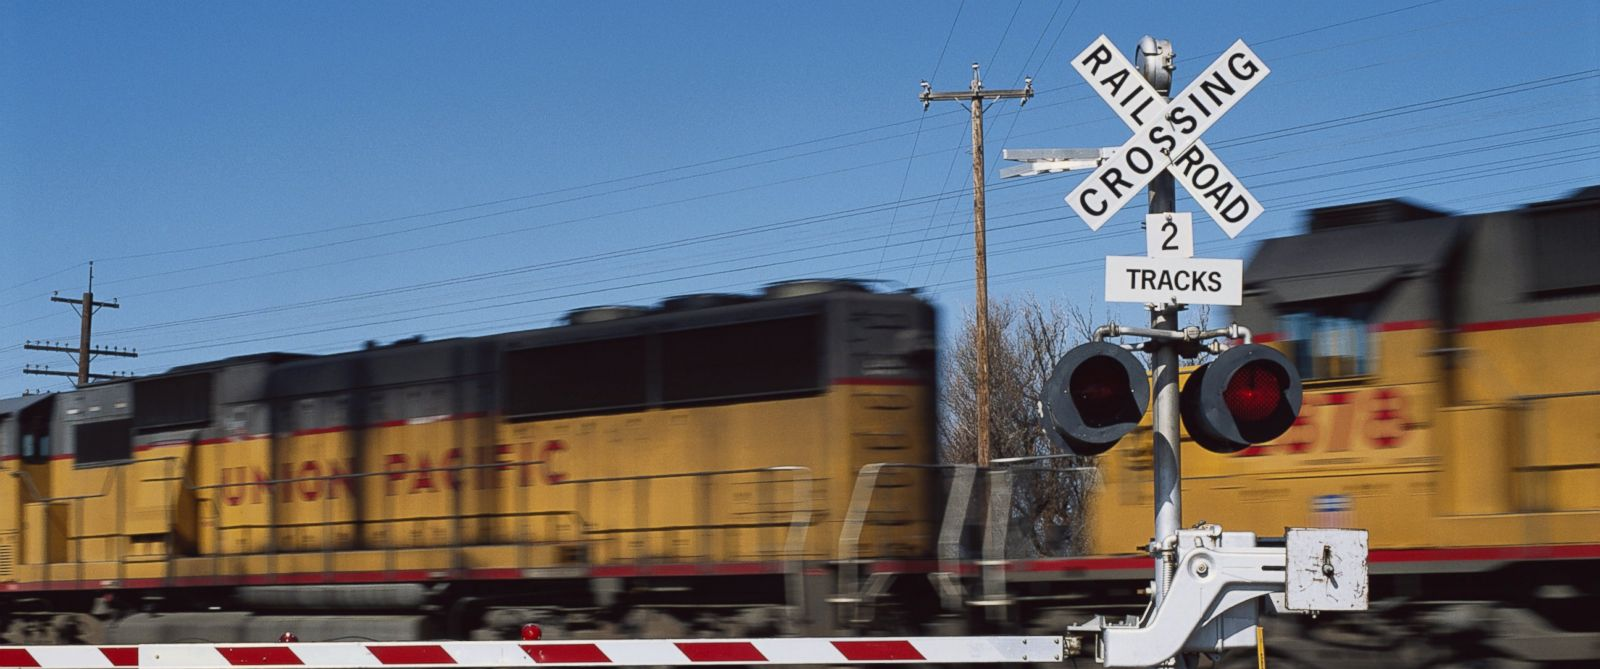 A railroad crossing is seen here.